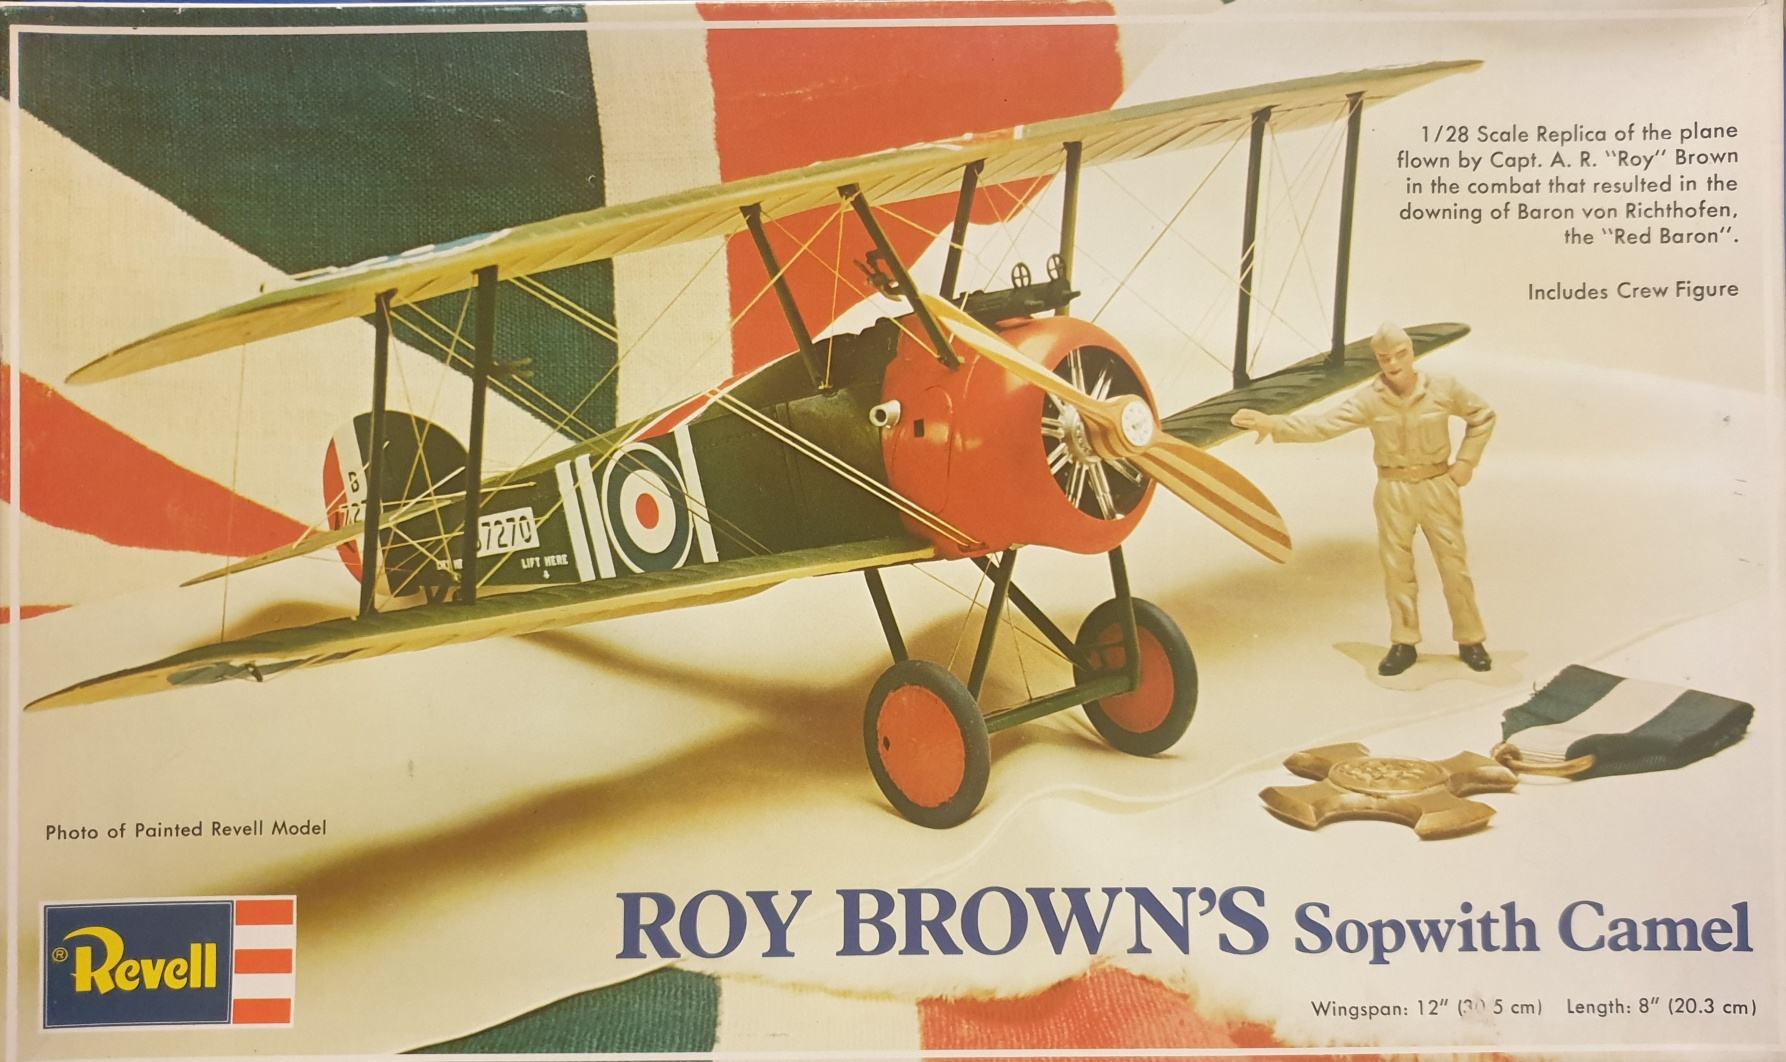 2 Revell H-234 Roy Brown's Sopwith Camel 1/28